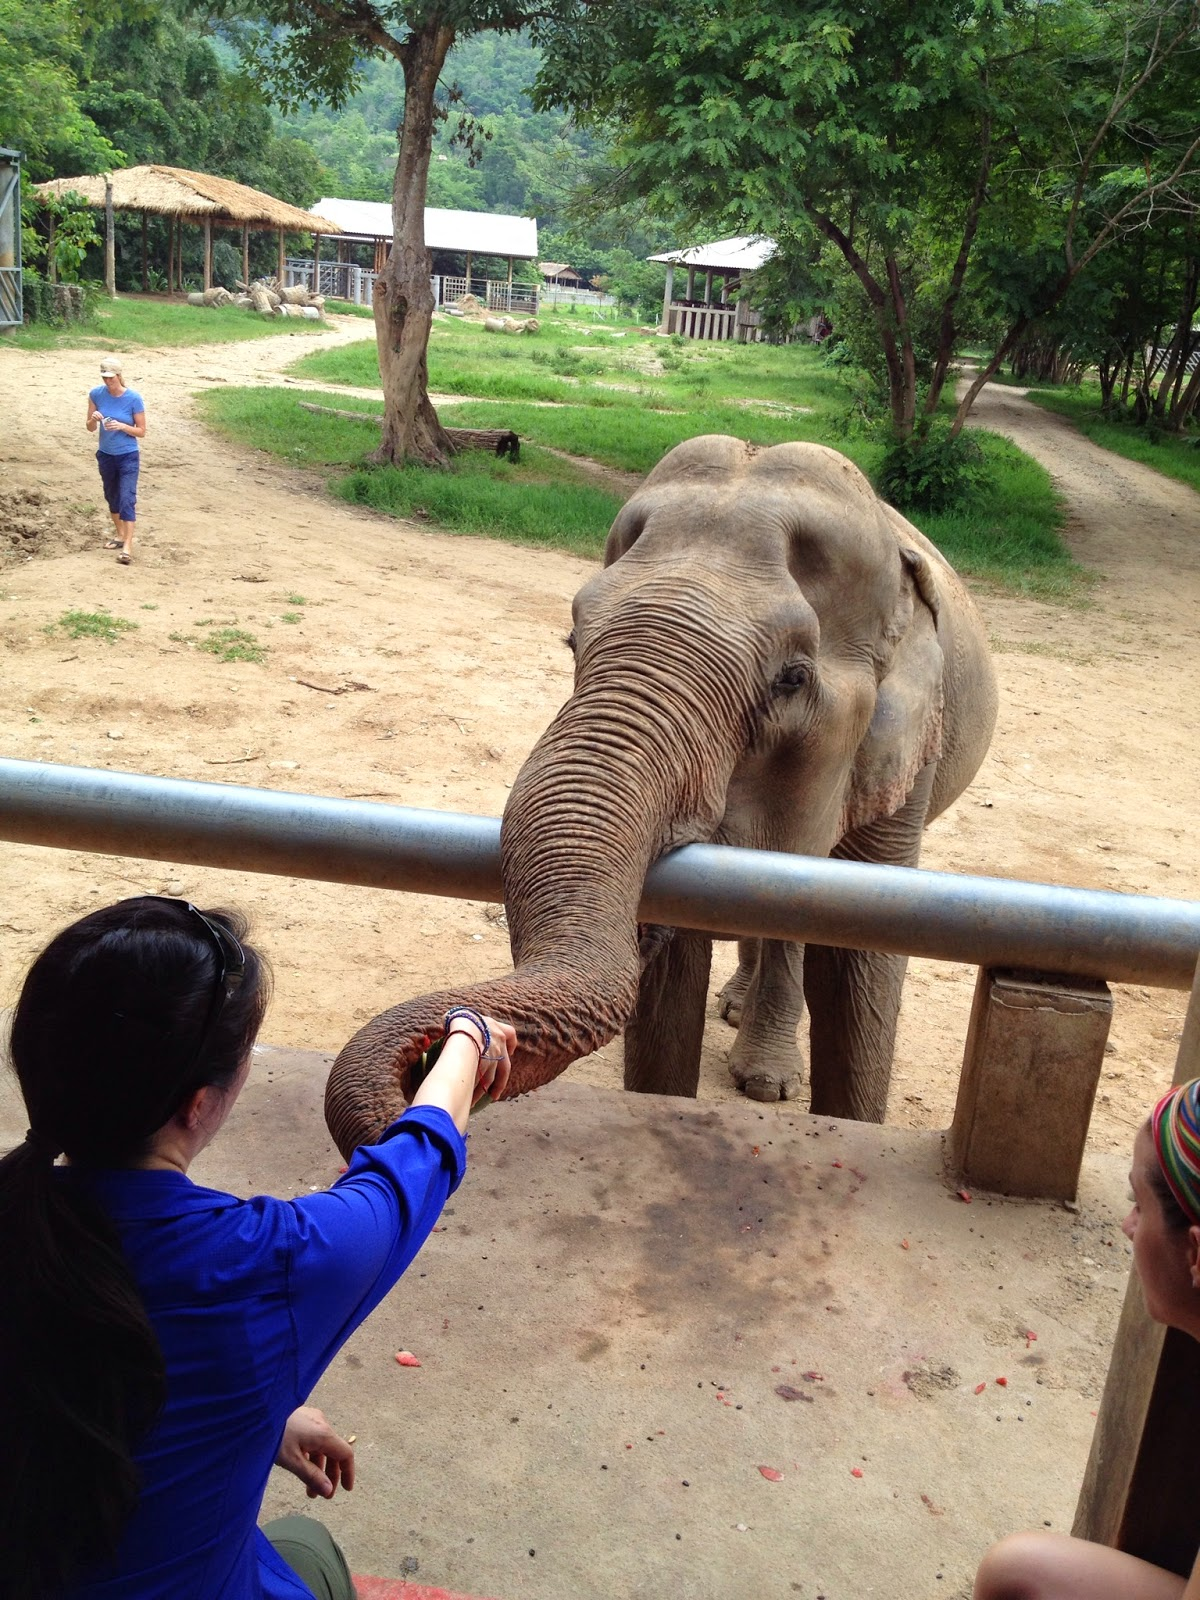 Chiang Mai - We had to maintain a healthy distance when feeding the elephants